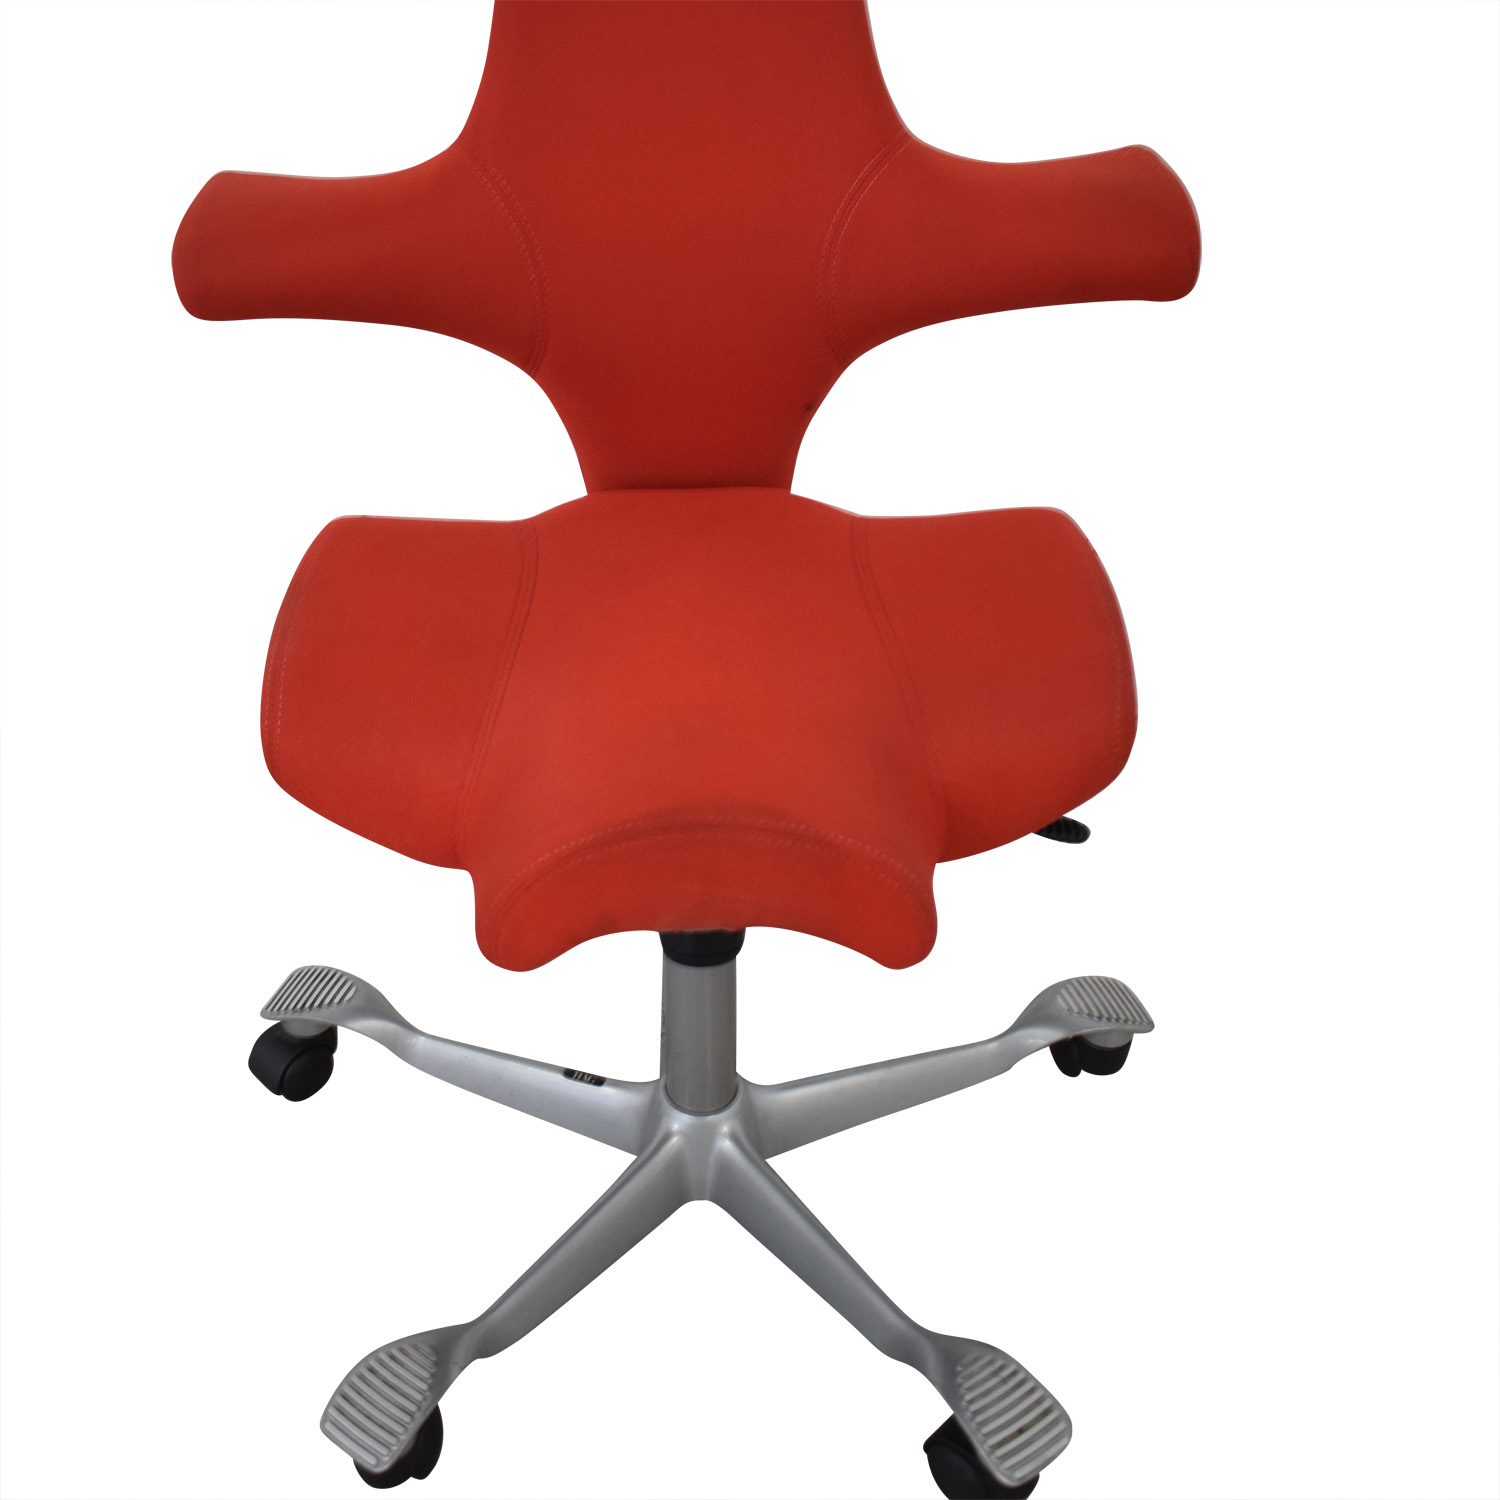 HAG HÅG Capisco Office Chair for sale